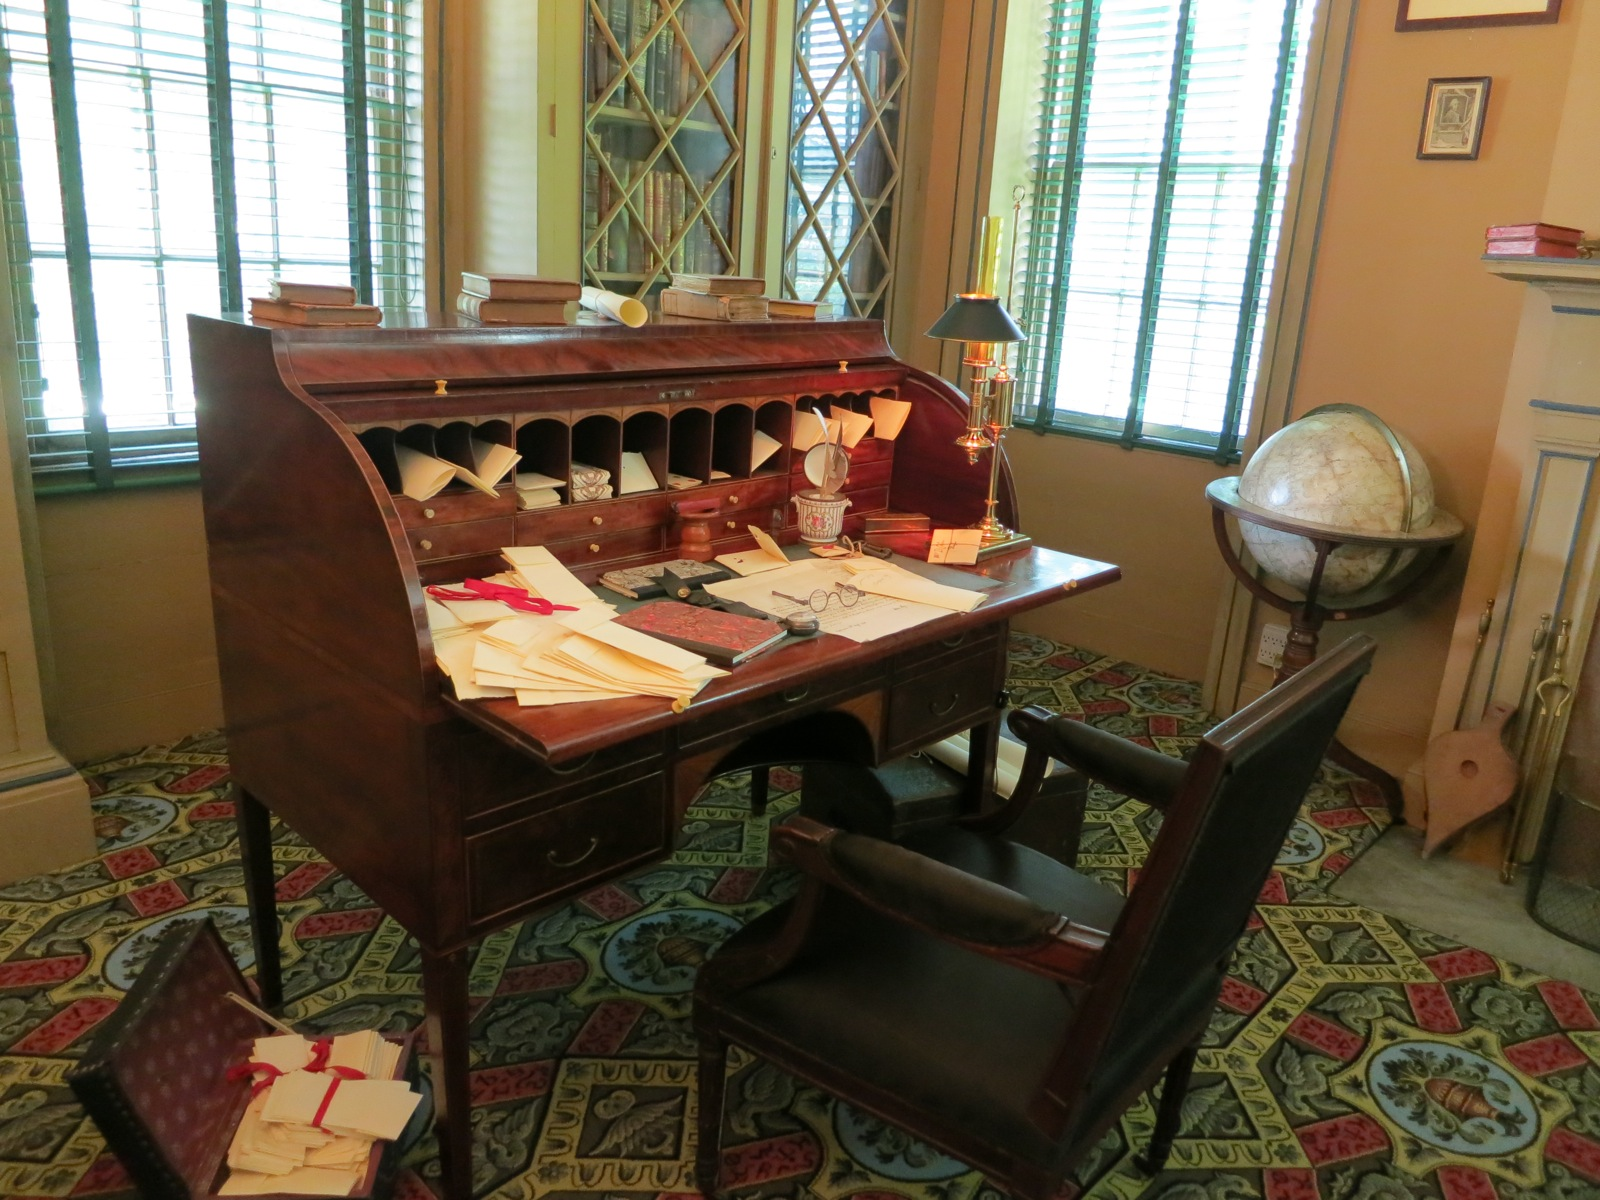 Bedford Katonah Ny Home To Music Art And Celebrities Since 1795 Adams Working At His Desk